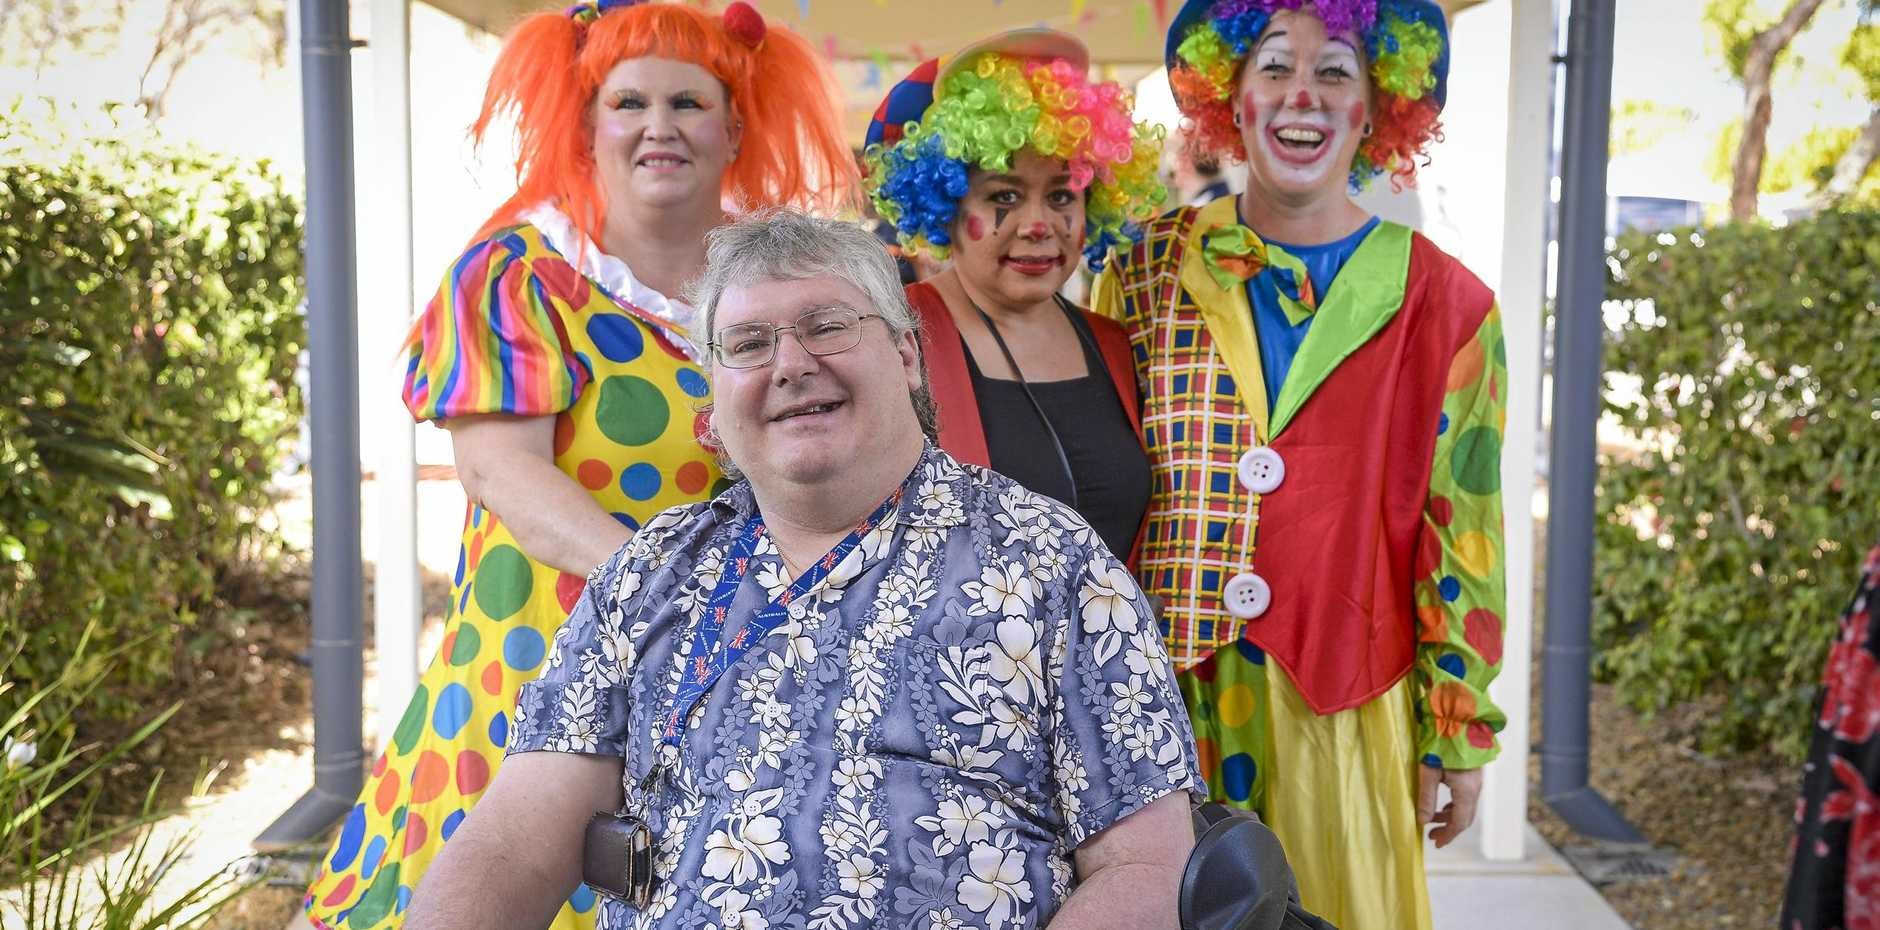 Rob mackney with the Blue Care Clowns at show day at Blue Care Gladstone Edenvale Aged Care facility on 16 August 2019.